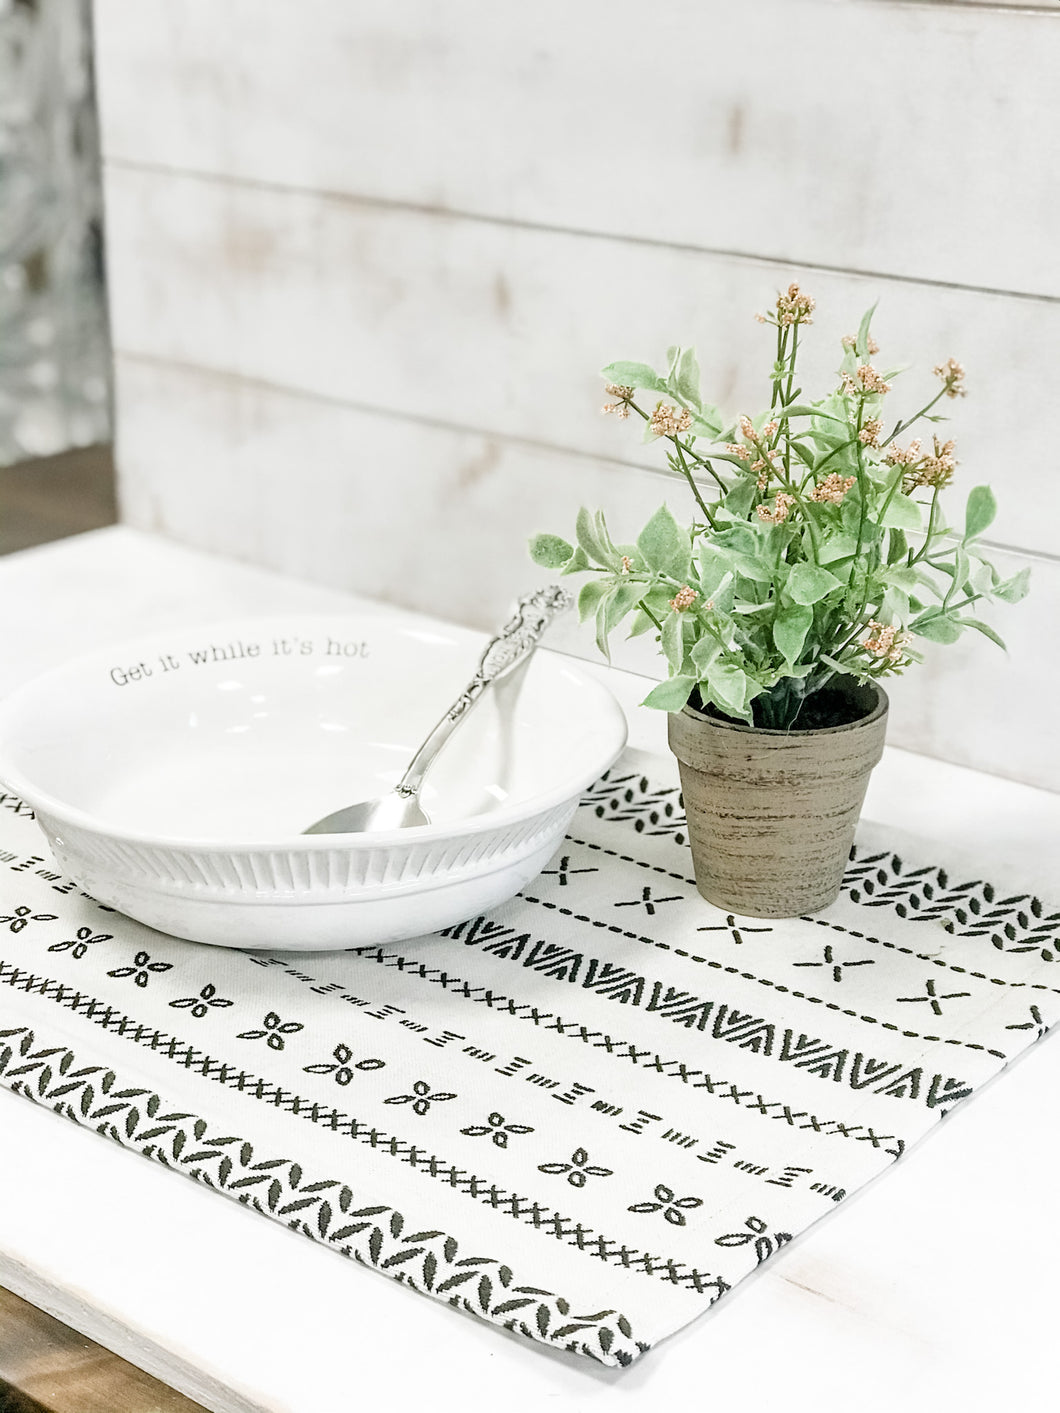 Soma Jacquard Placemat - The Rustic Barn CT